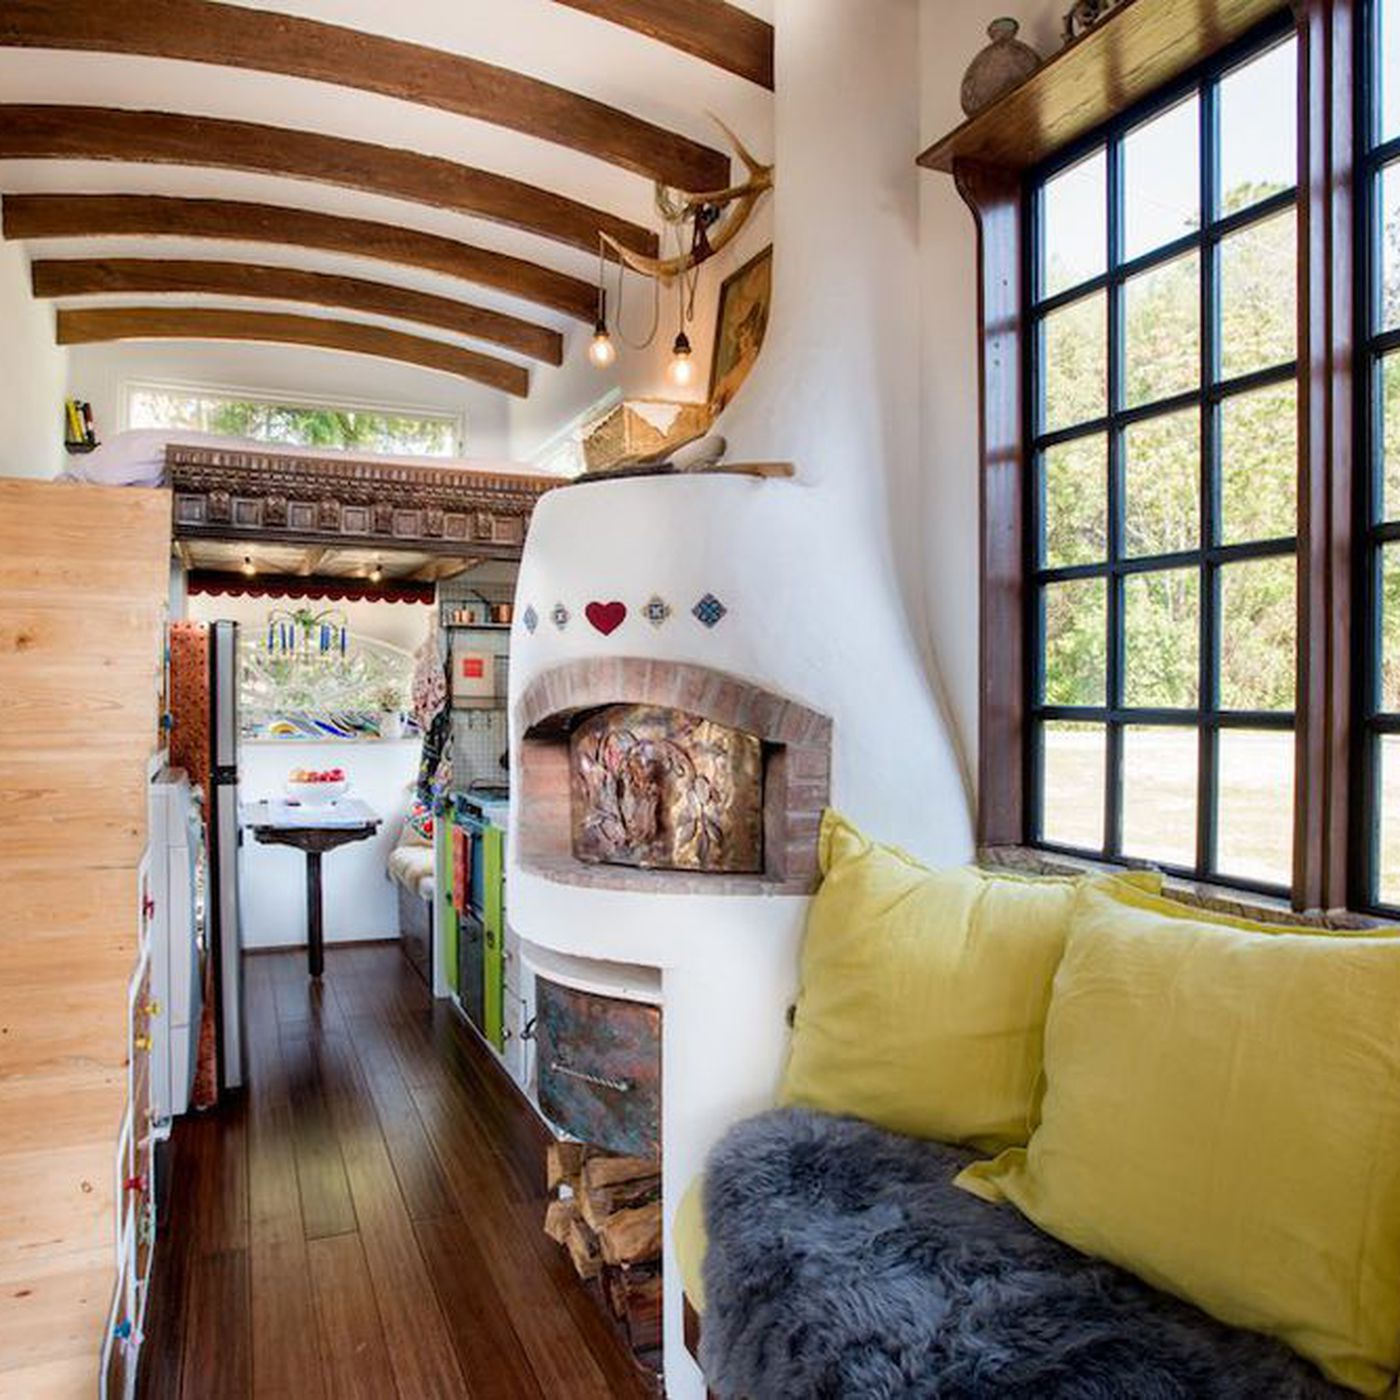 Tiny houses in 2017: More flexible, clever than ever - Curbed on idaho snow, little houses, idaho real estate, idaho homes, idaho fishing, idaho photography, idaho winter, small houses, idaho birds, idaho farming, idaho cabins, idaho animals, idaho history, idaho cars, idaho mushrooms, idaho food, idaho off-road, idaho camping,